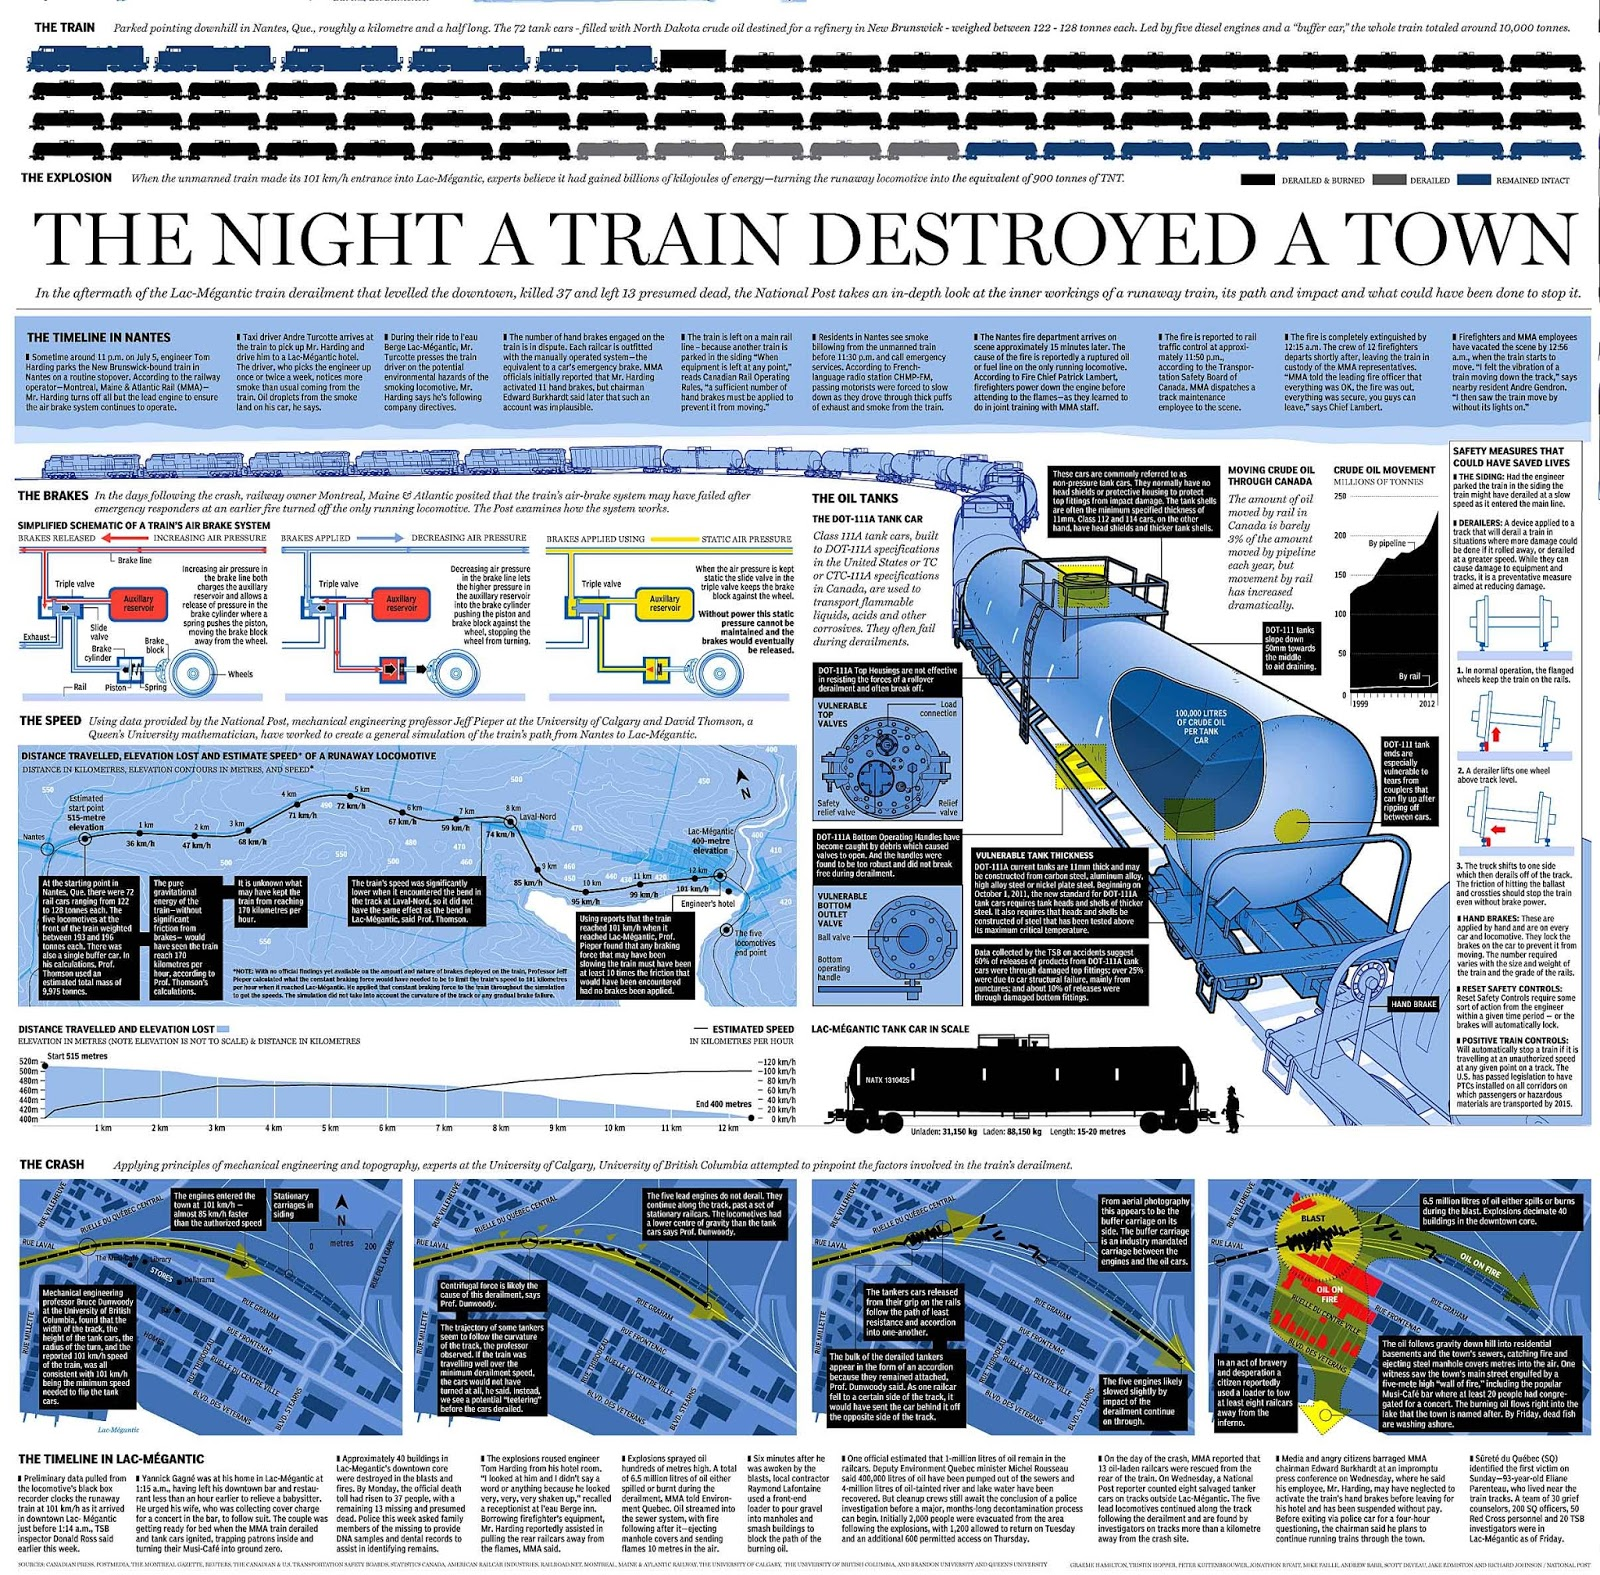 The Adhnighttrain: Oil-Electric: The Night A Train Destroyed A Town